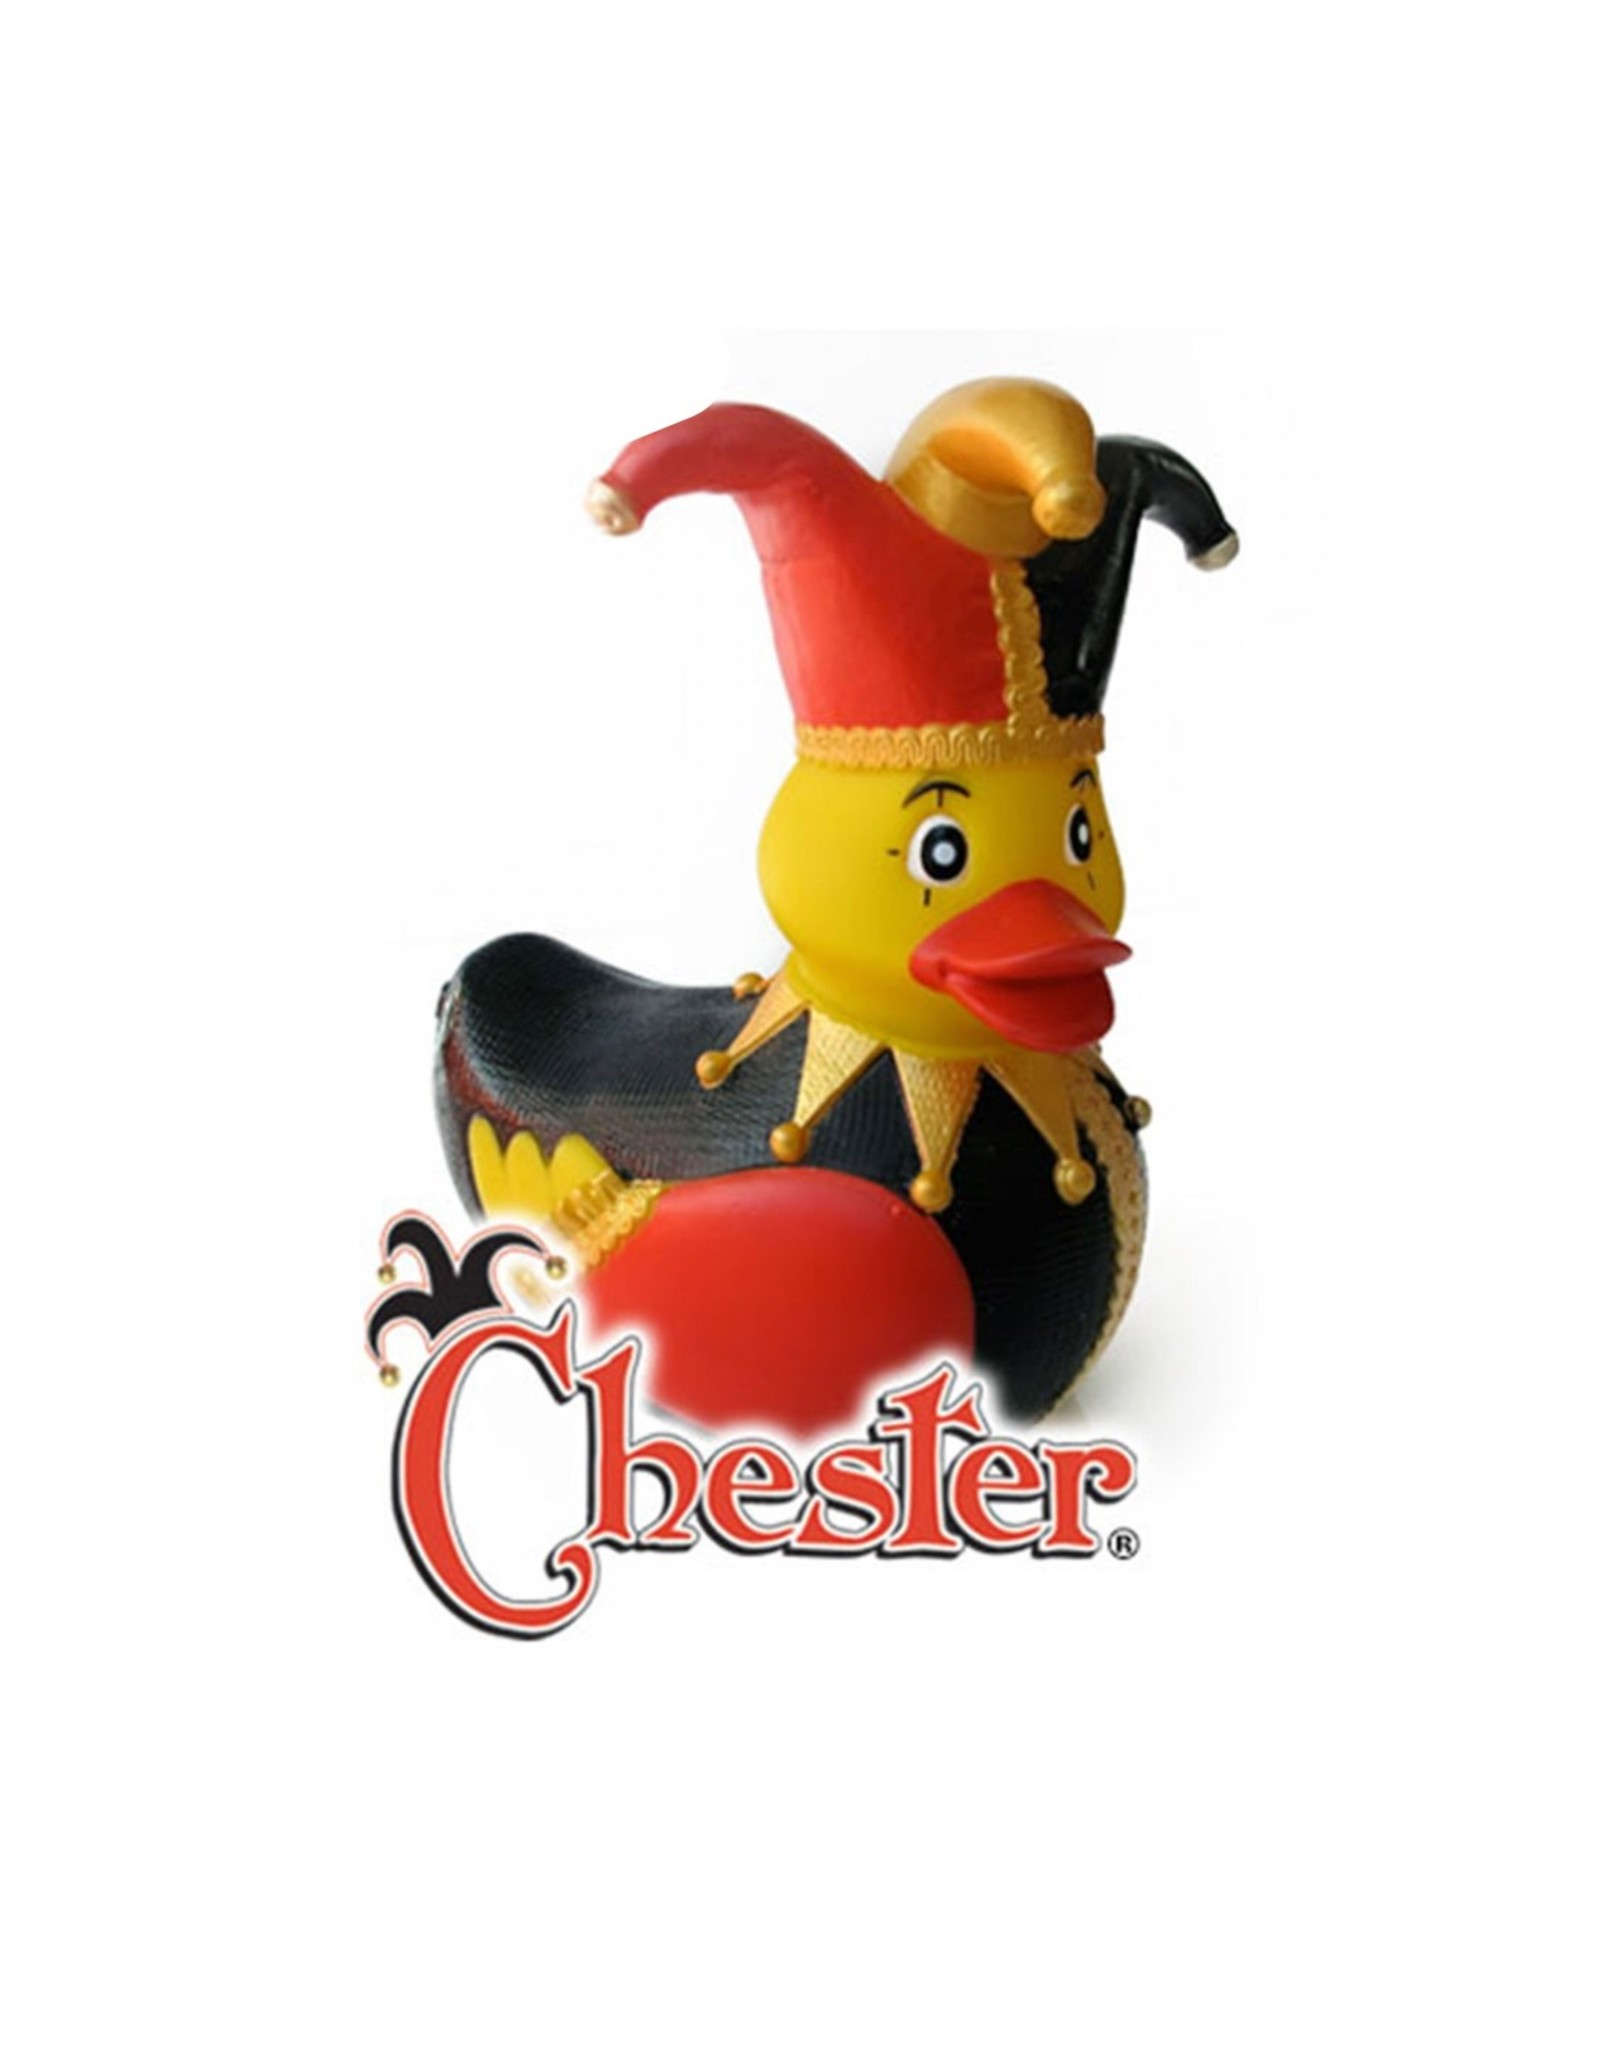 Chester the Jester Rubber Duck